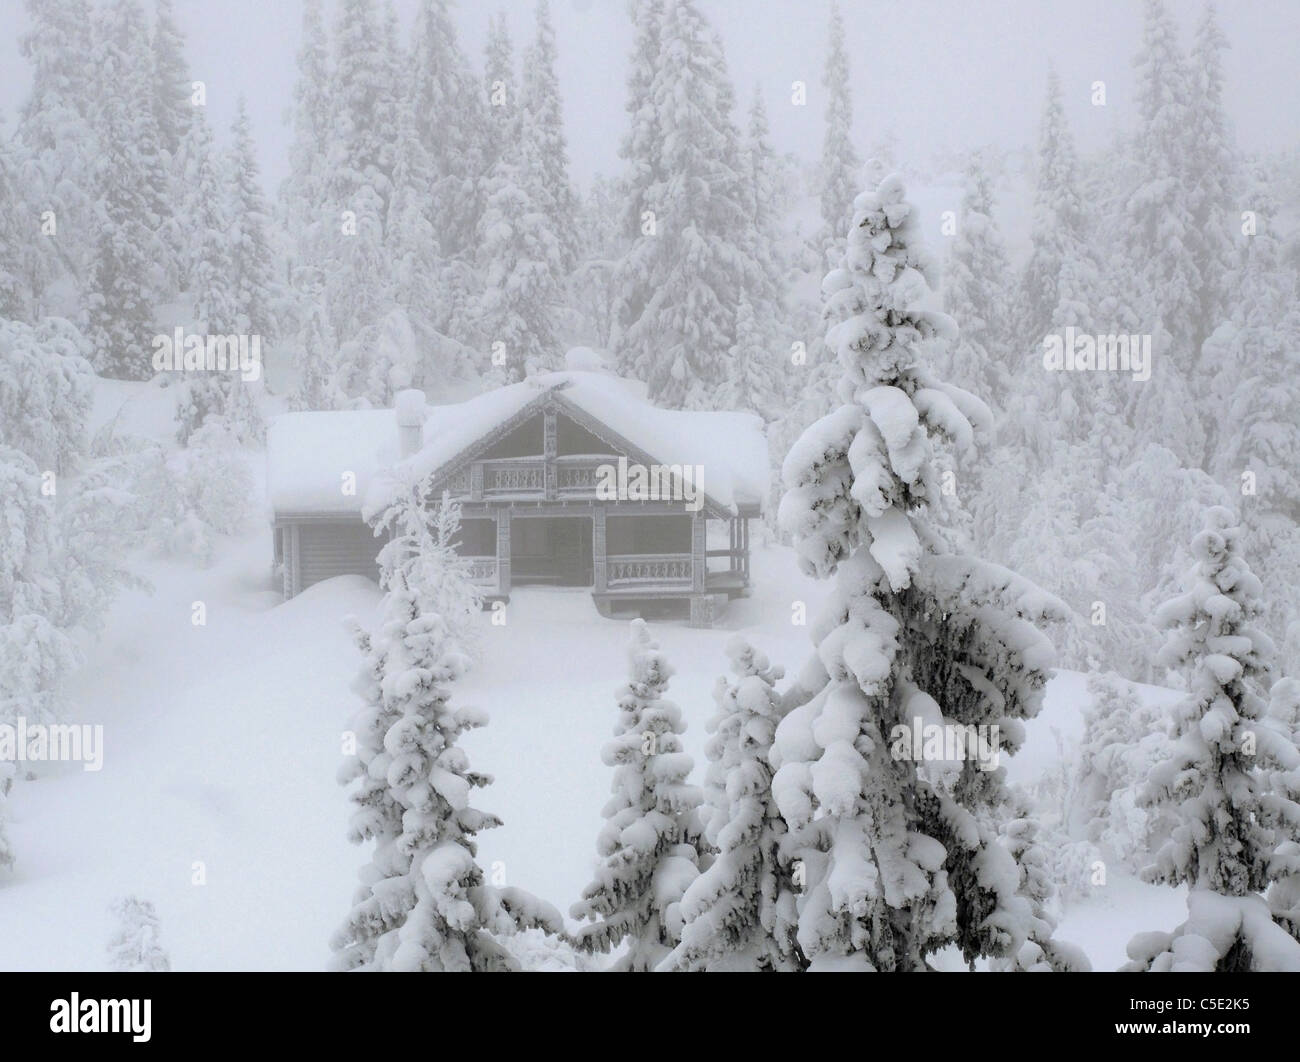 Snowed cabin and fir trees in winter landscape - Stock Image